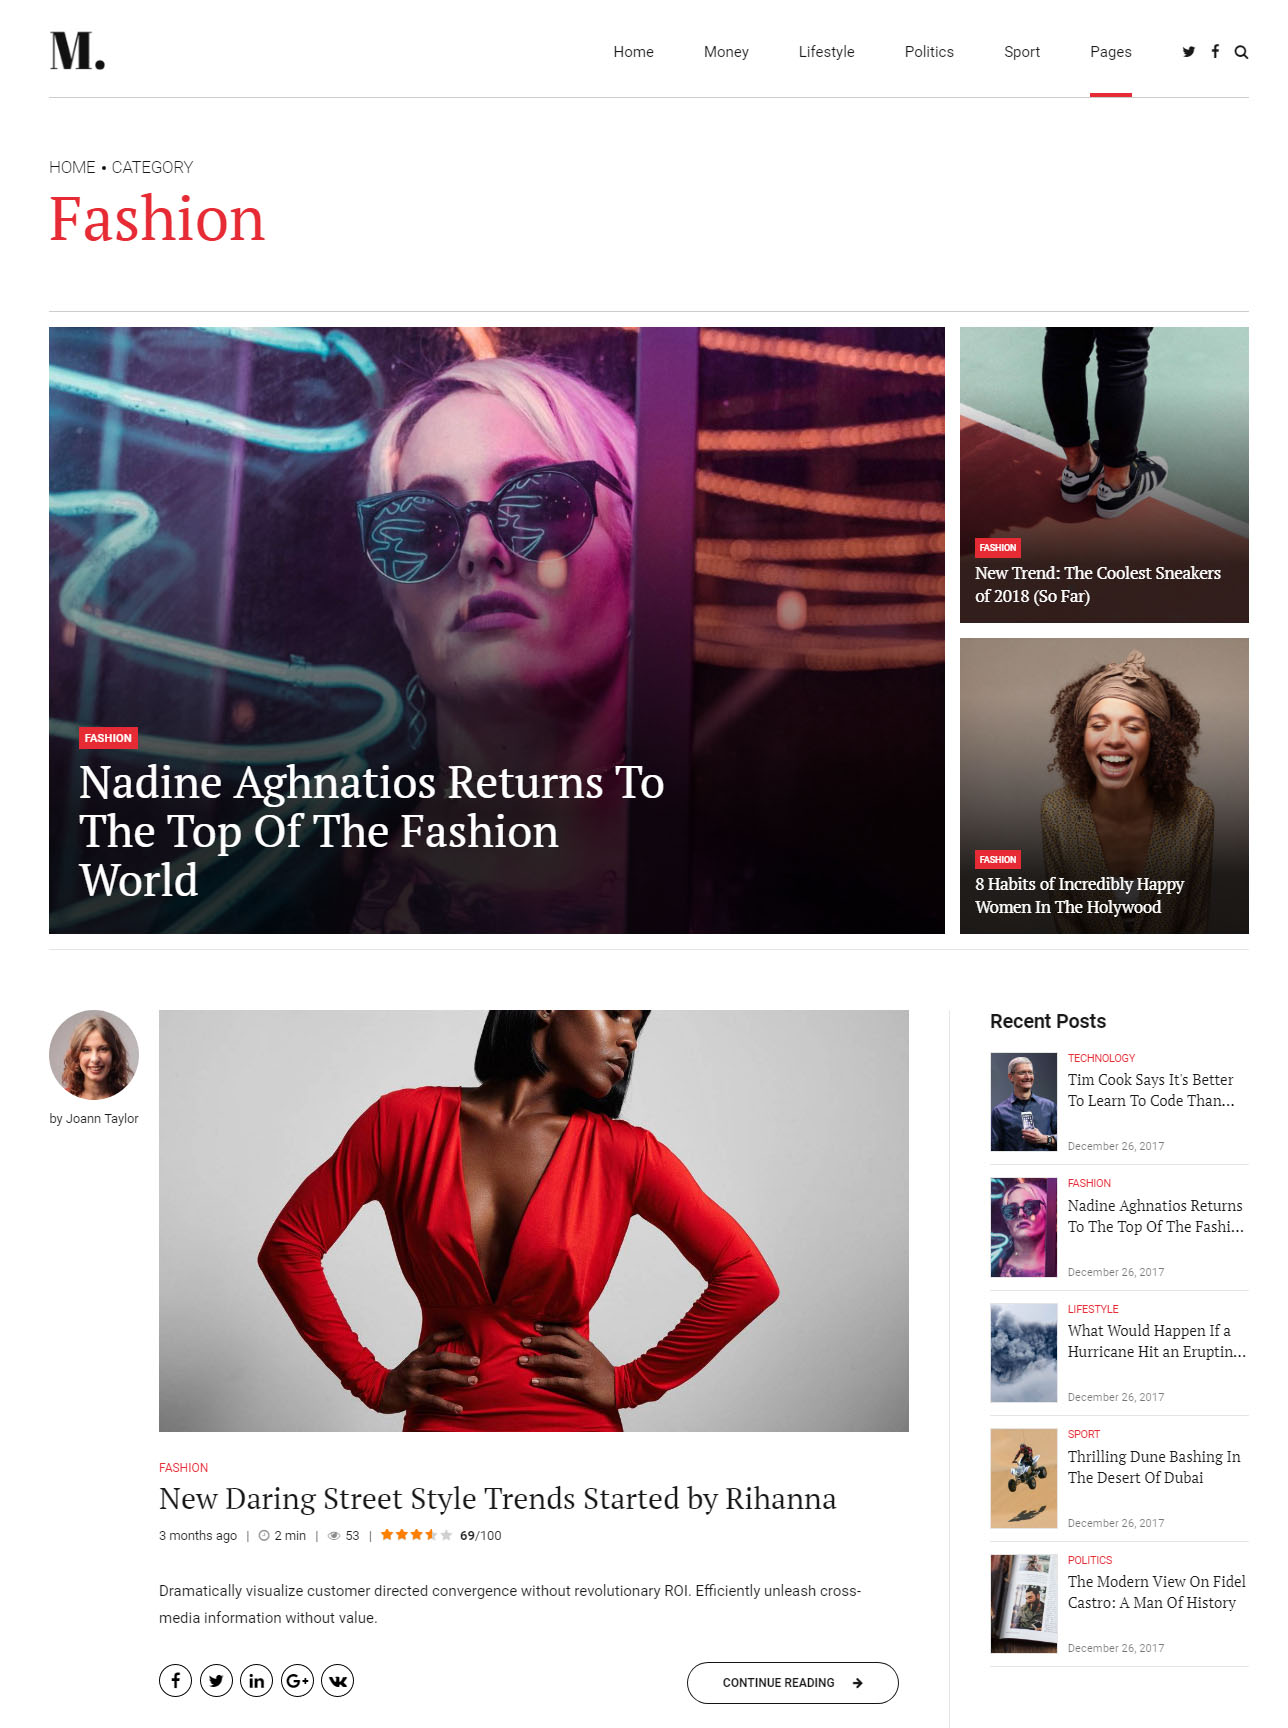 http://documentation.bold-themes.com/newstar/wp-content/uploads/sites/32/2018/03/screenshot-fashion.jpg